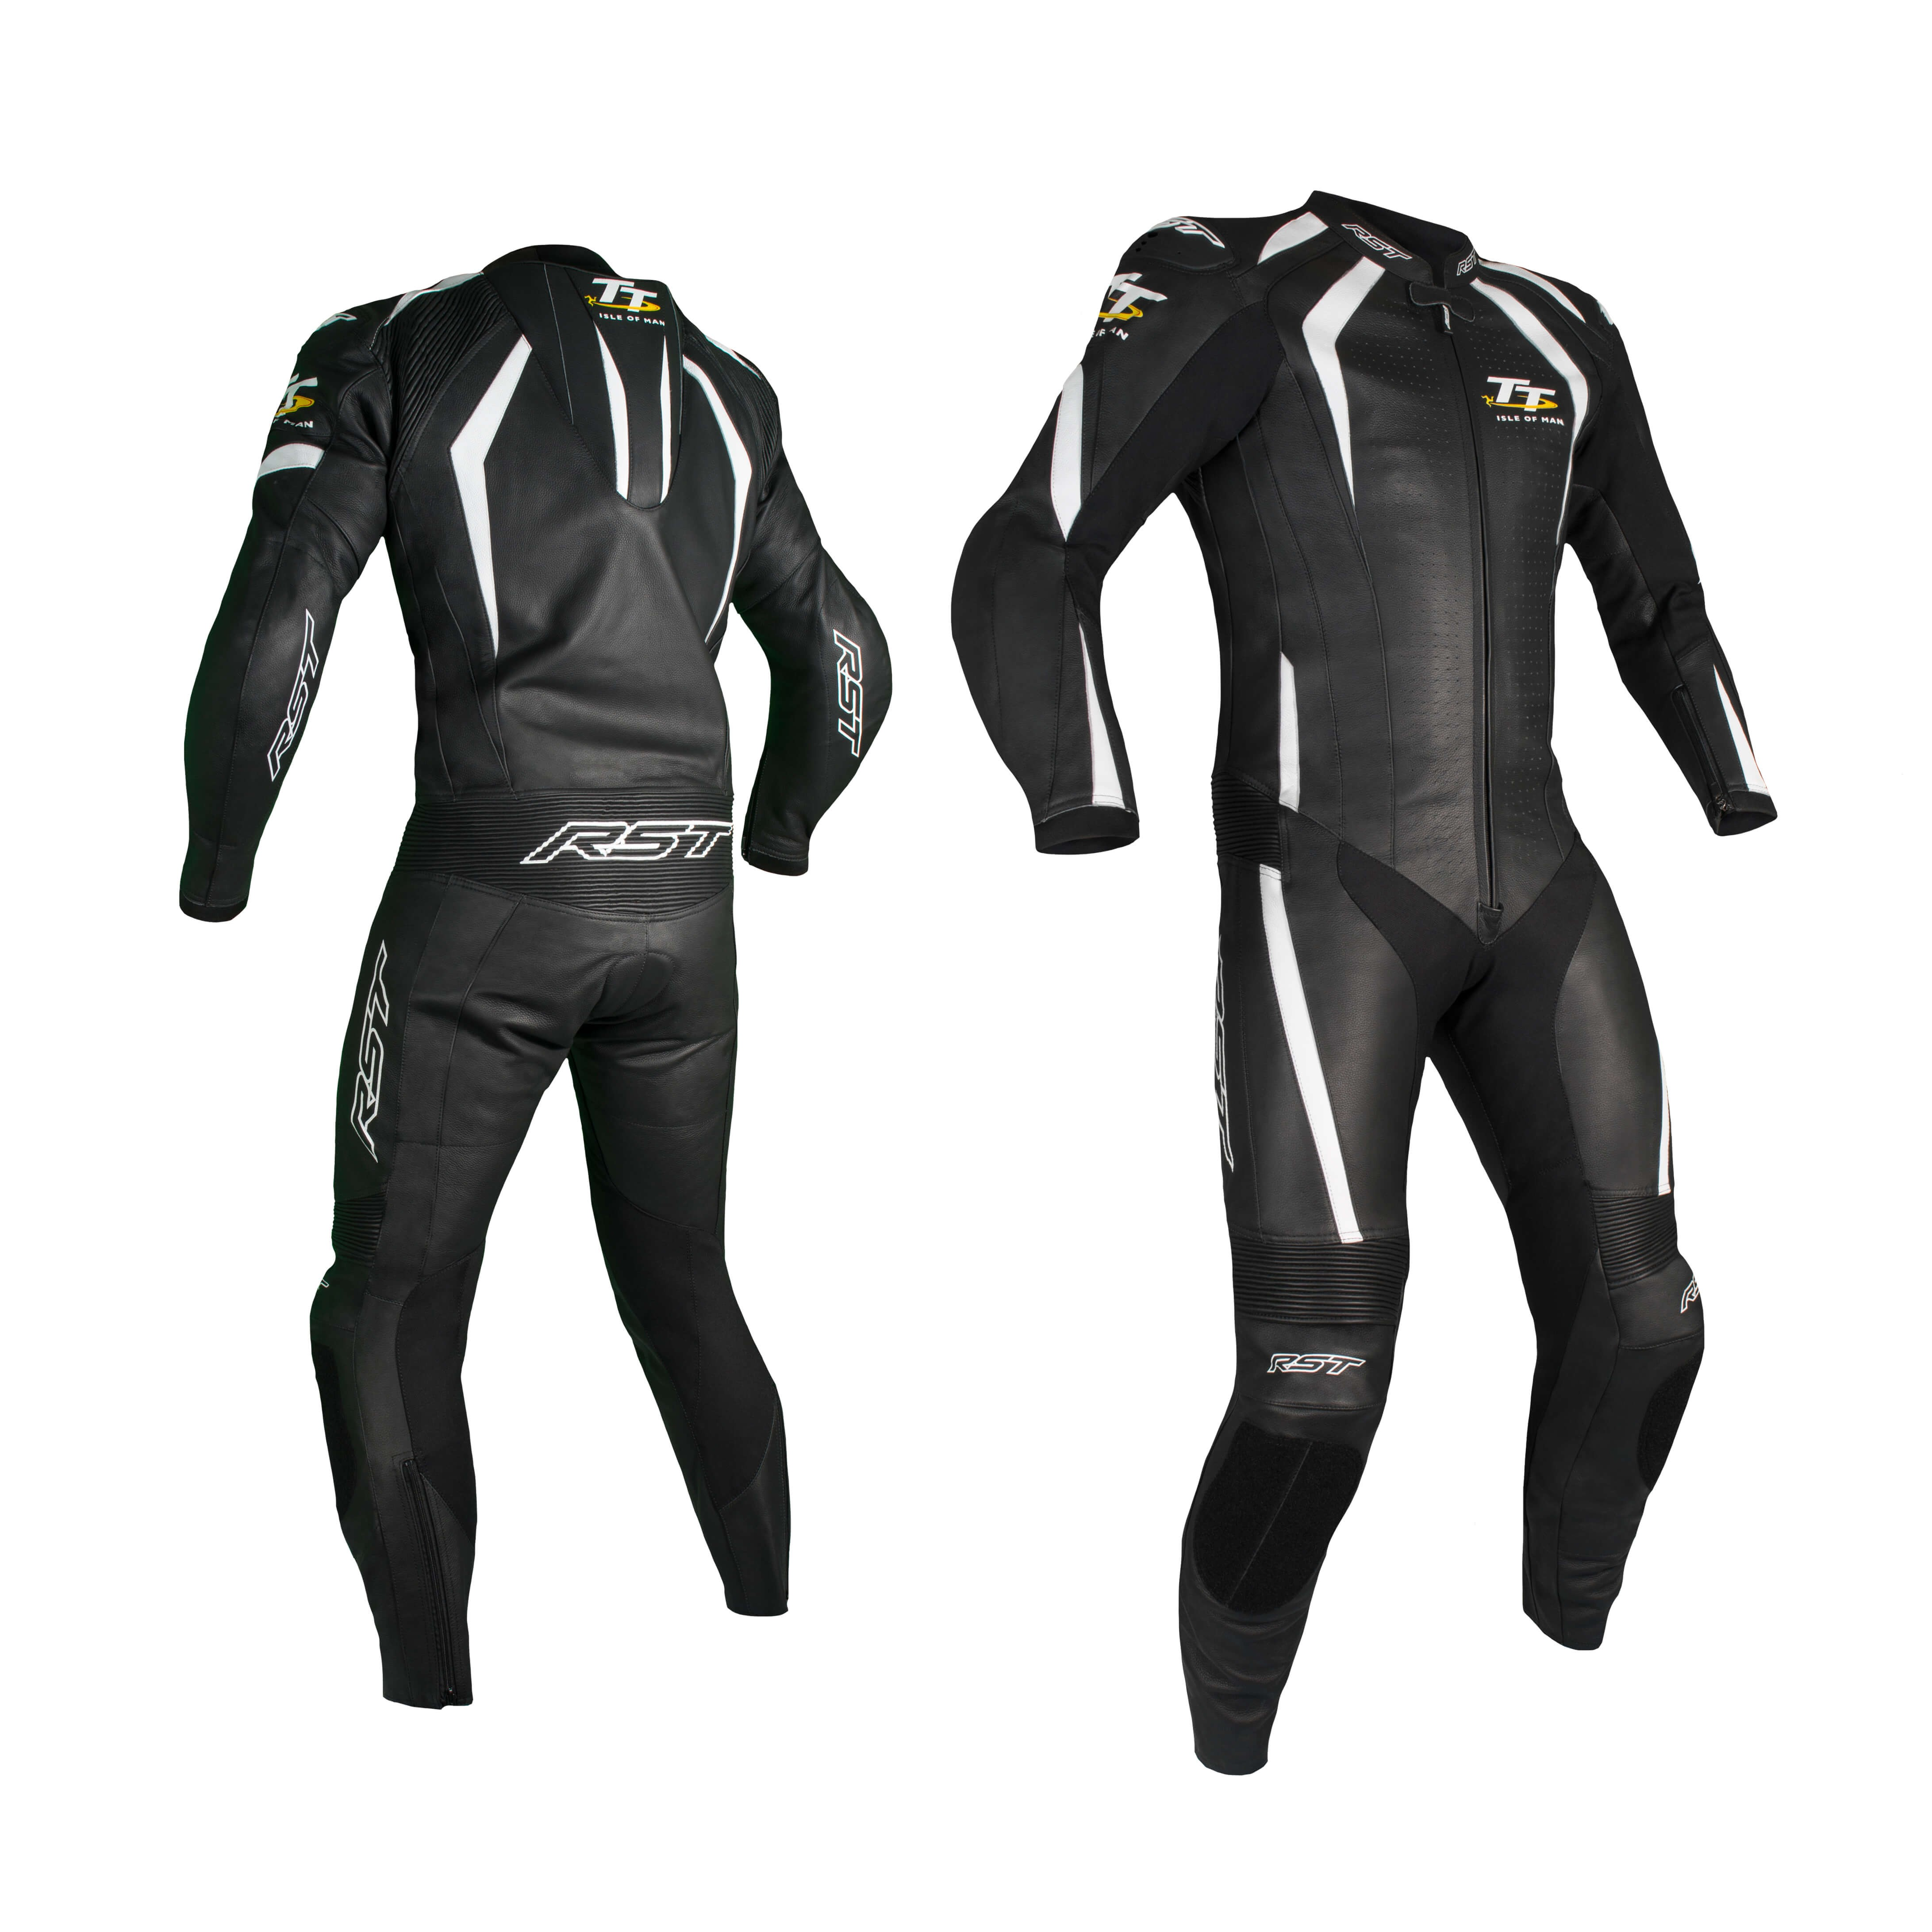 RST IOM TT Grandstand CE leather one piece suit